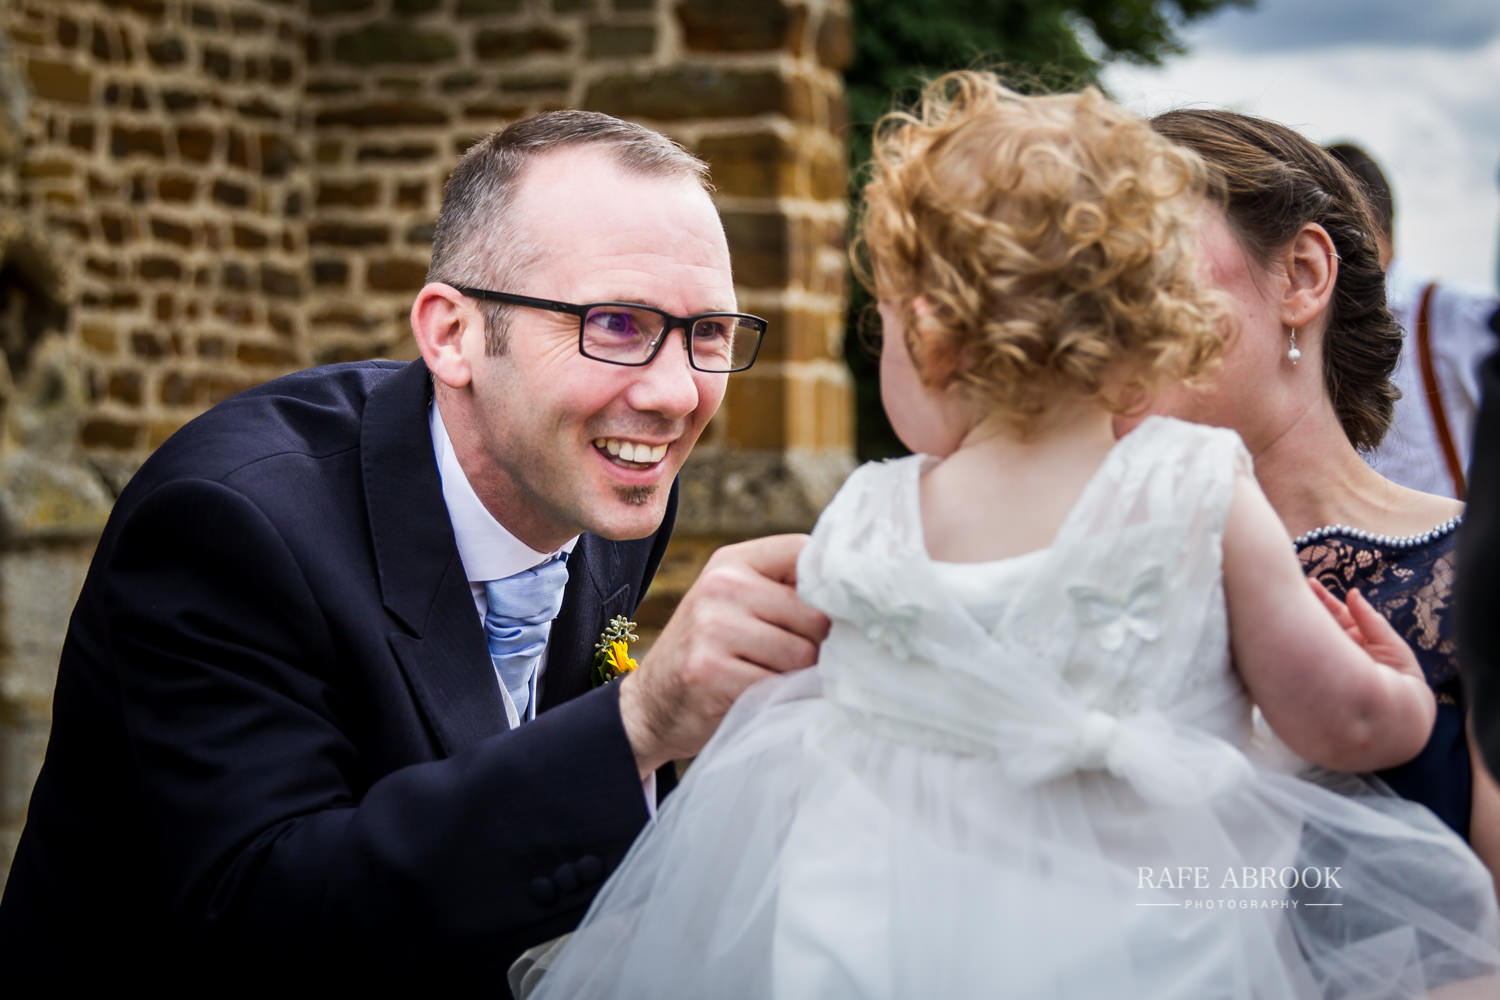 minstrel court wedding royston cambridge hertfordshire wedding photographer-1221.jpg